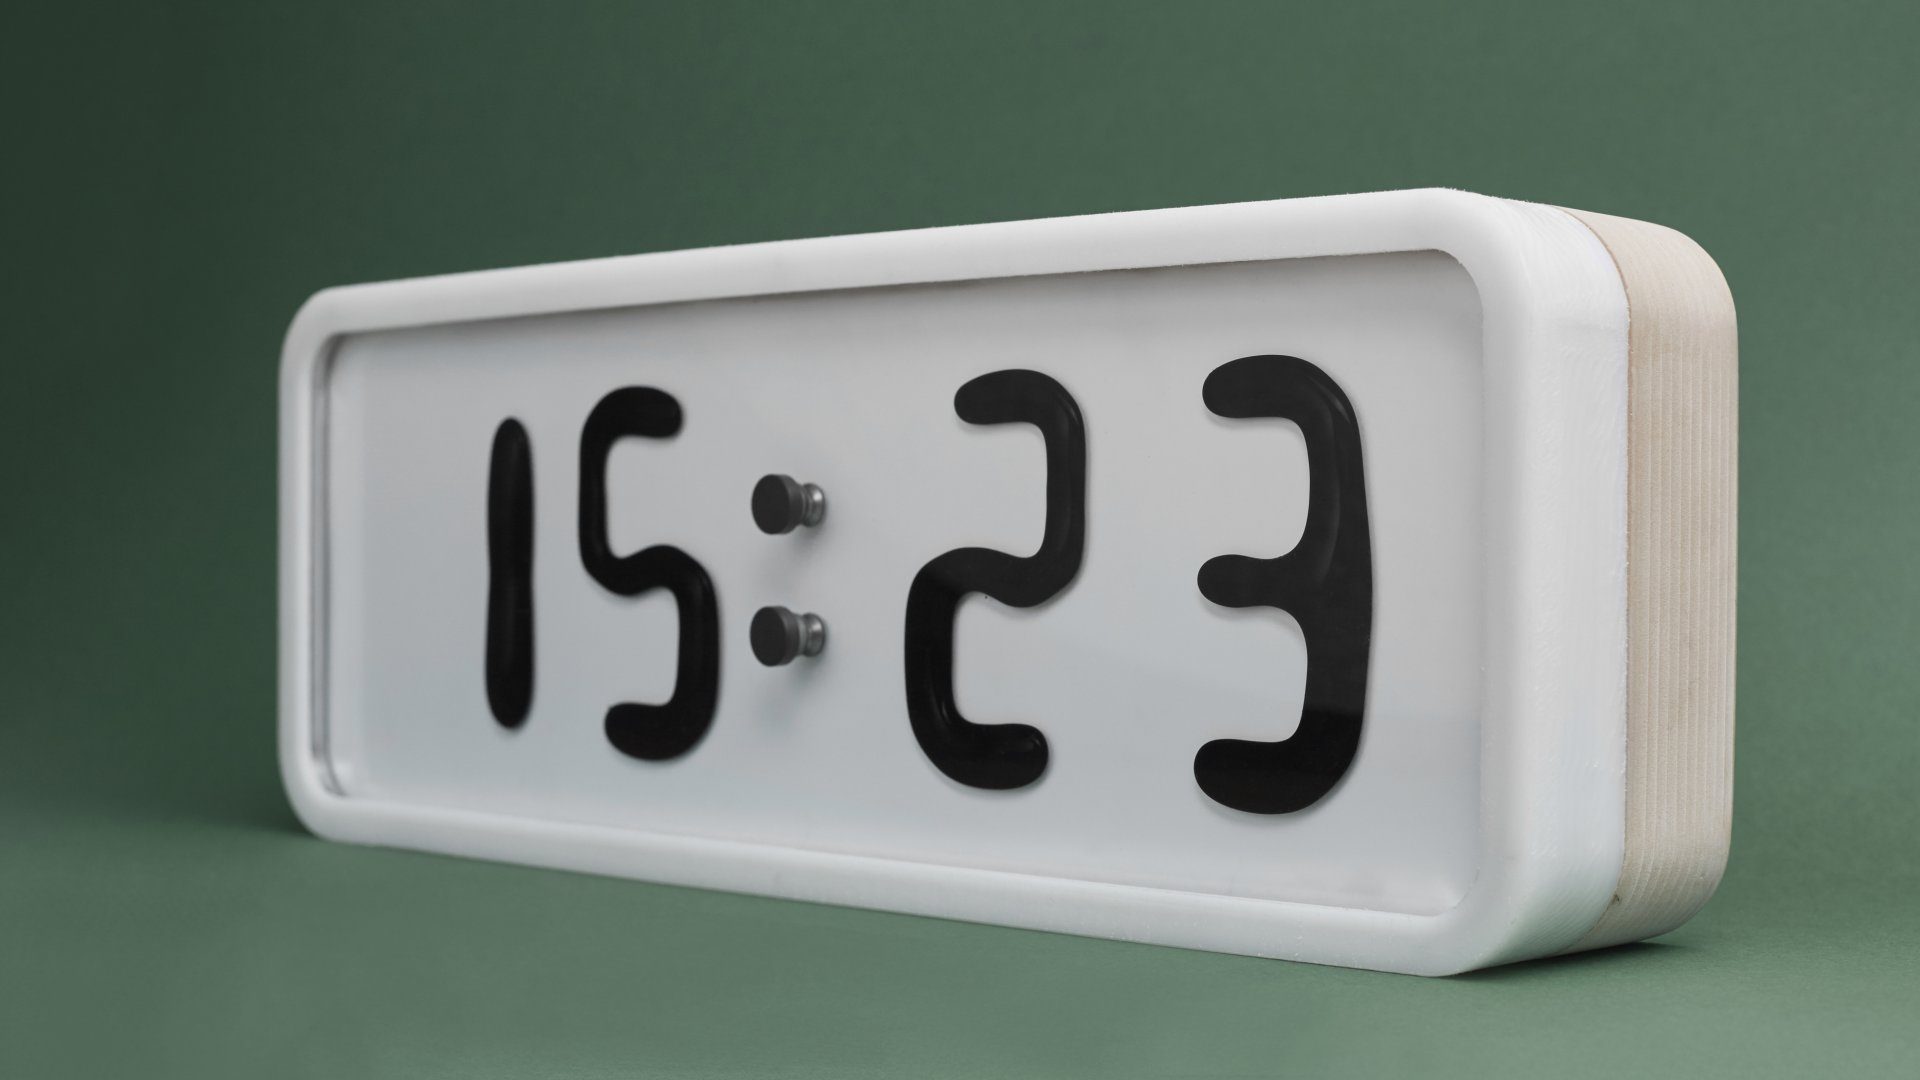 Rhei, an electro-mechanical clock with a liquid display, is currently in the prototype stage.